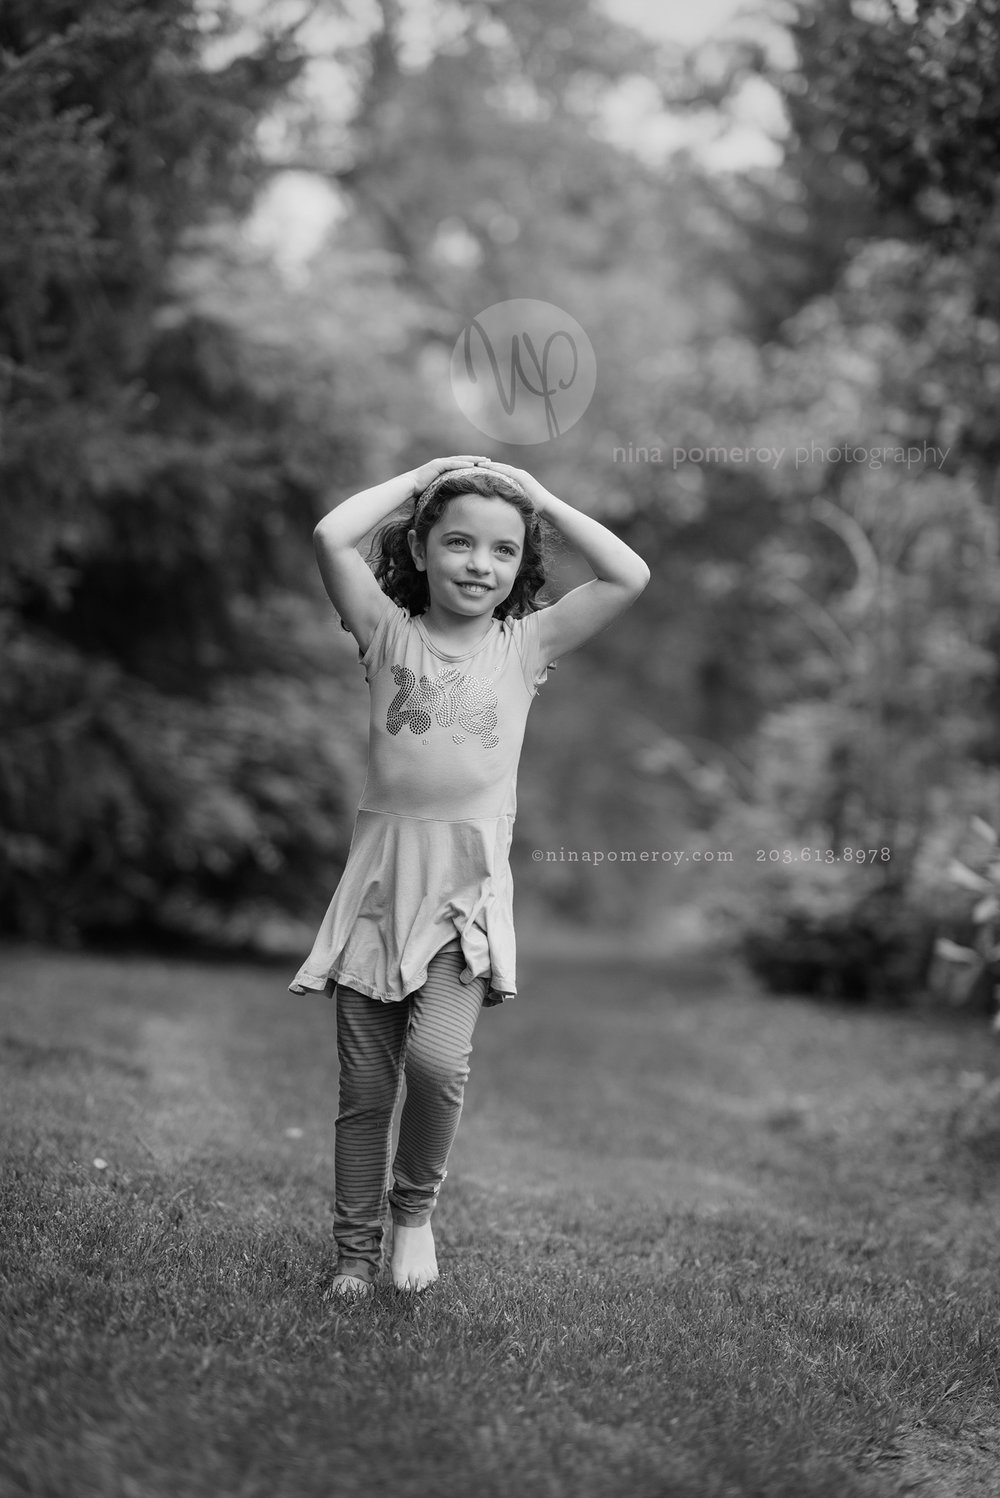 Little girls portrait taken in her favorite backyard park setting by bay area photographer nina pomeroy